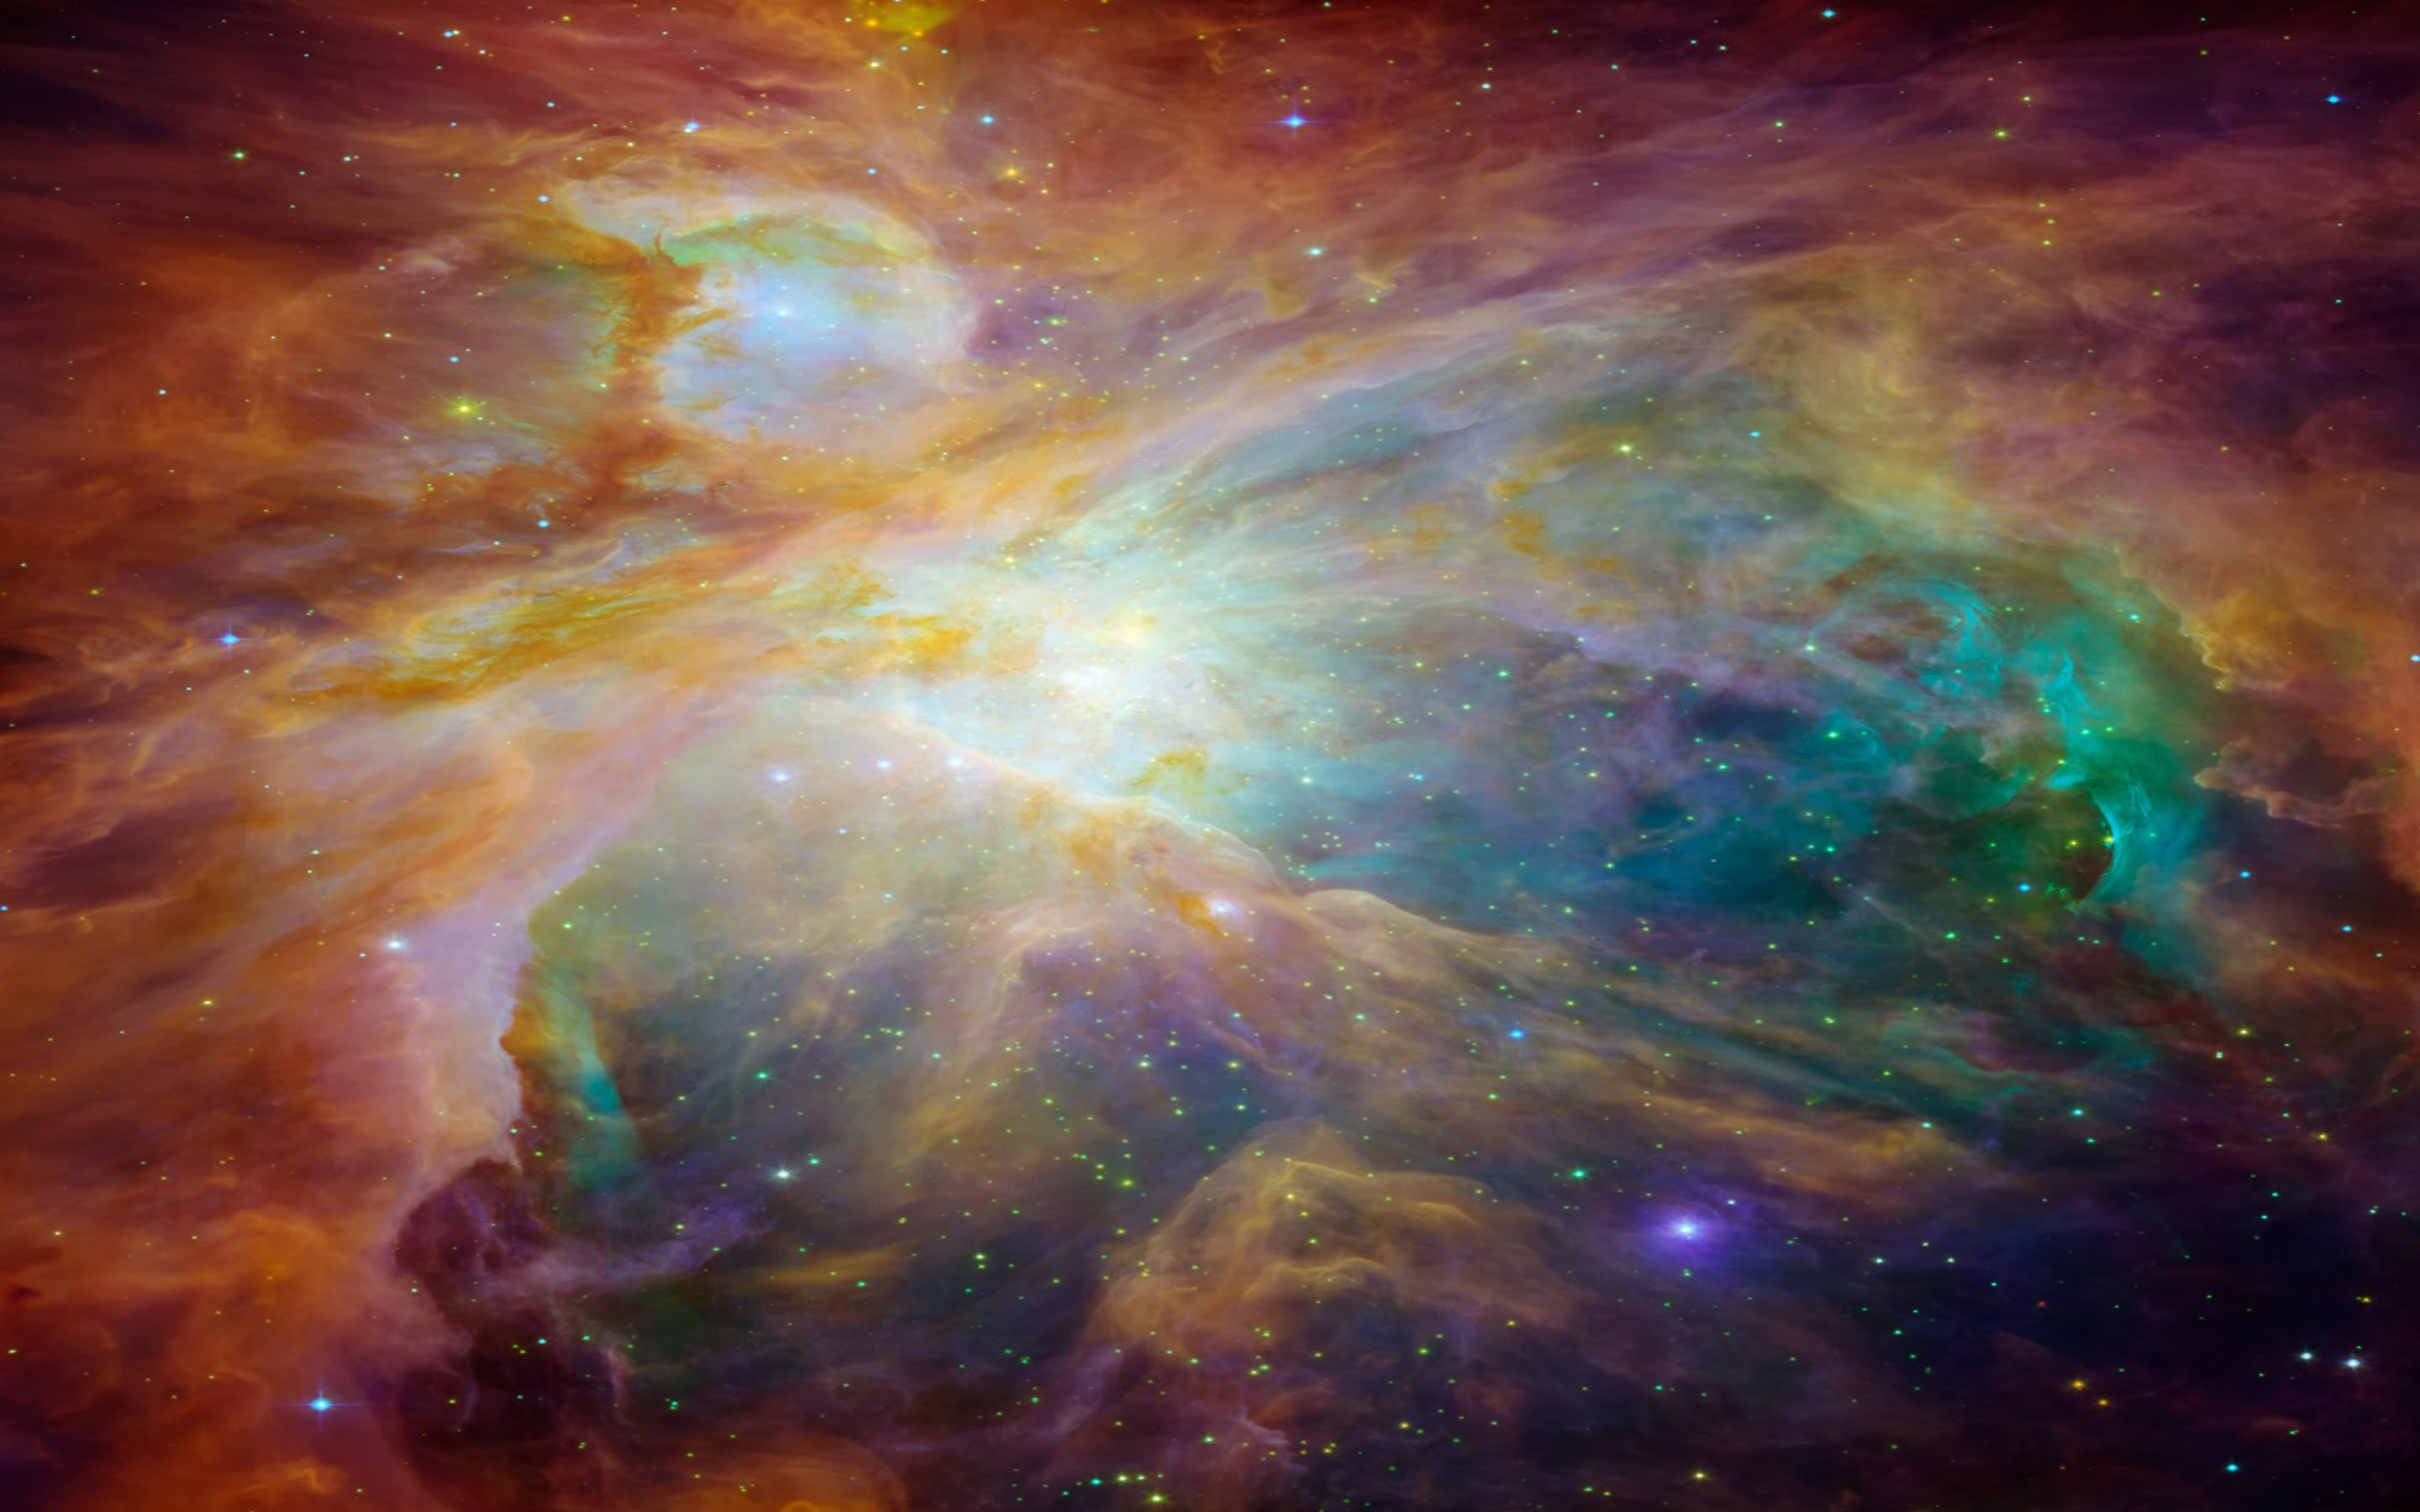 Best Wallpaper High Quality Nebula - Orion-Nebula-Wallpaper-High-Quality  Photograph_78924.jpg